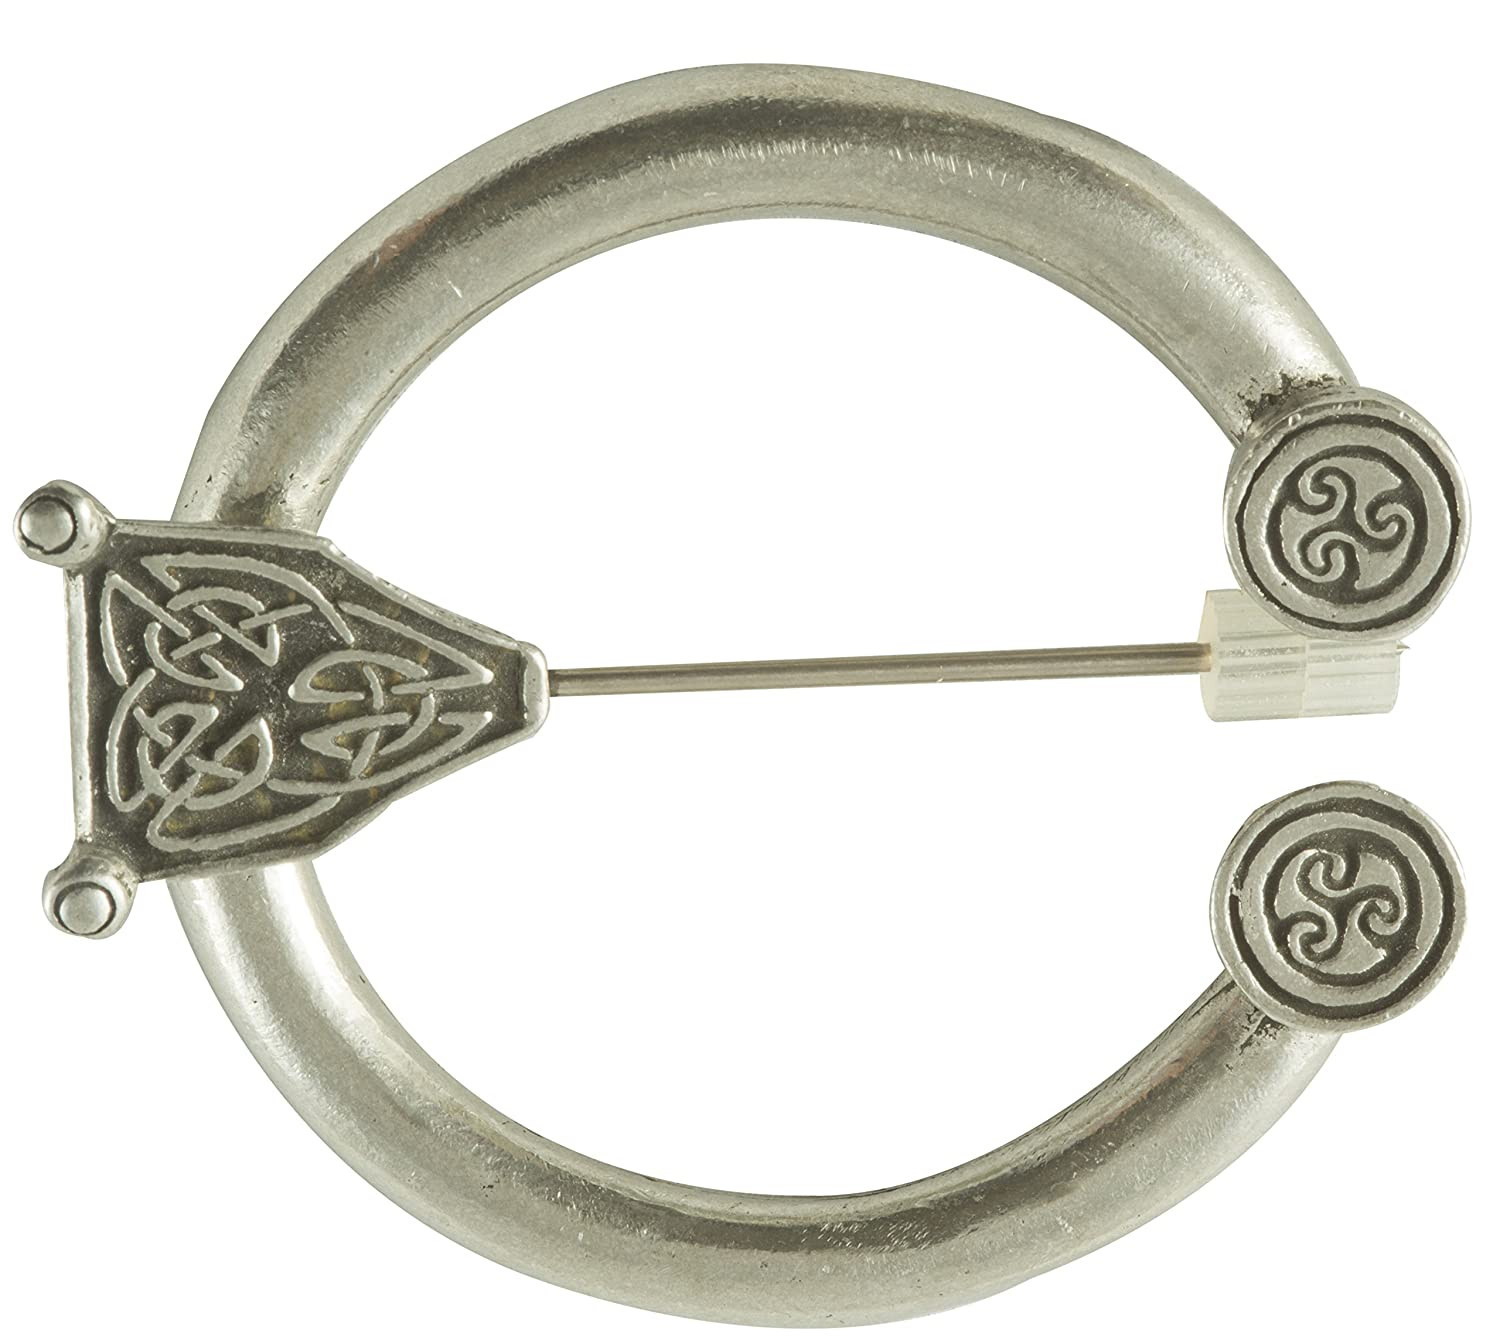 Attractive Antique Celtic Design Pewter Penannular Cloak Brooch Pin    DeluxeAdultCostumes.com